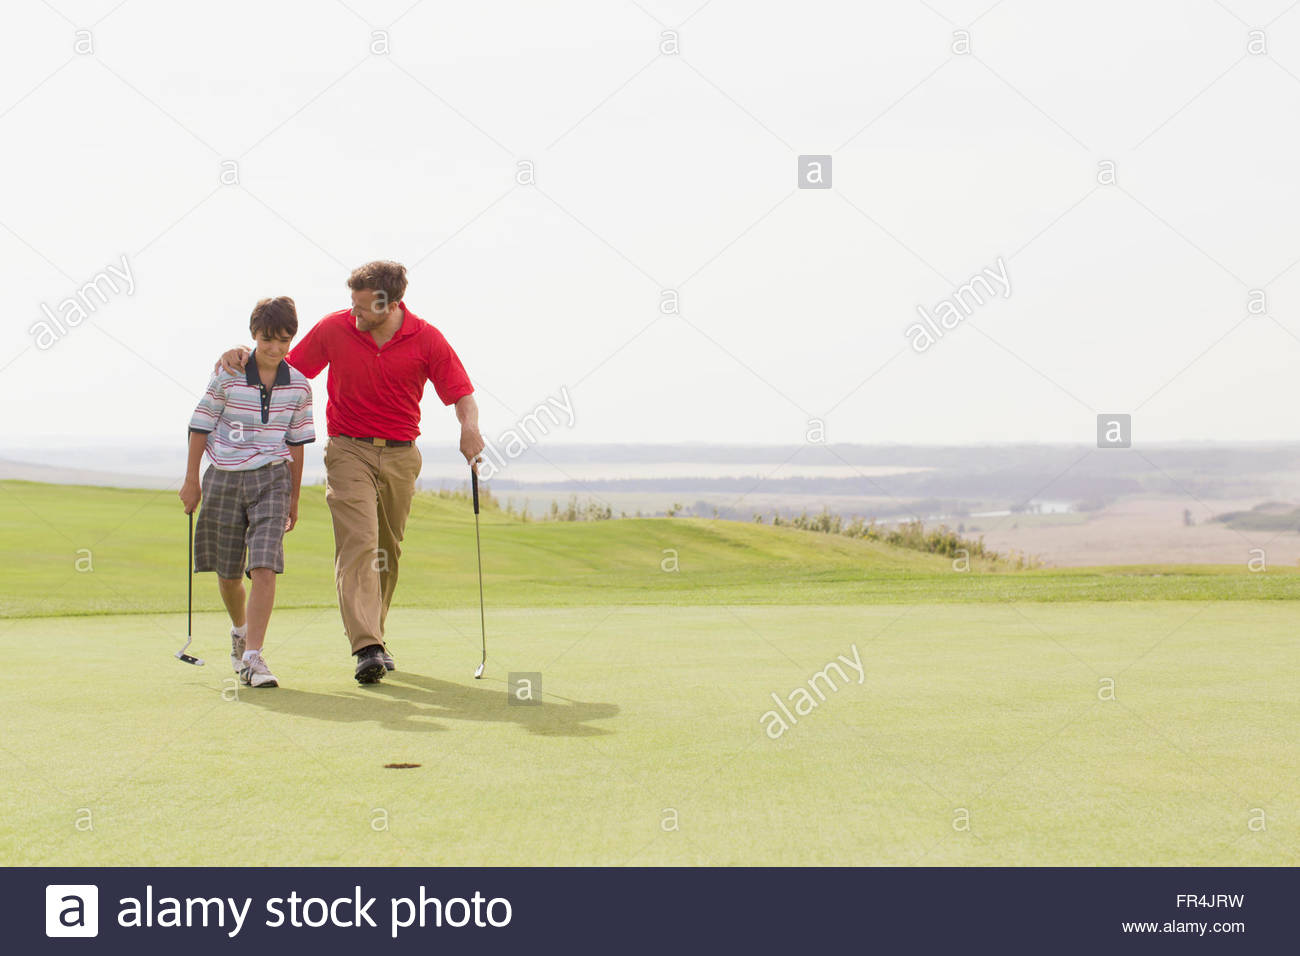 father and pre-teen son walking together on golf green - Stock Image